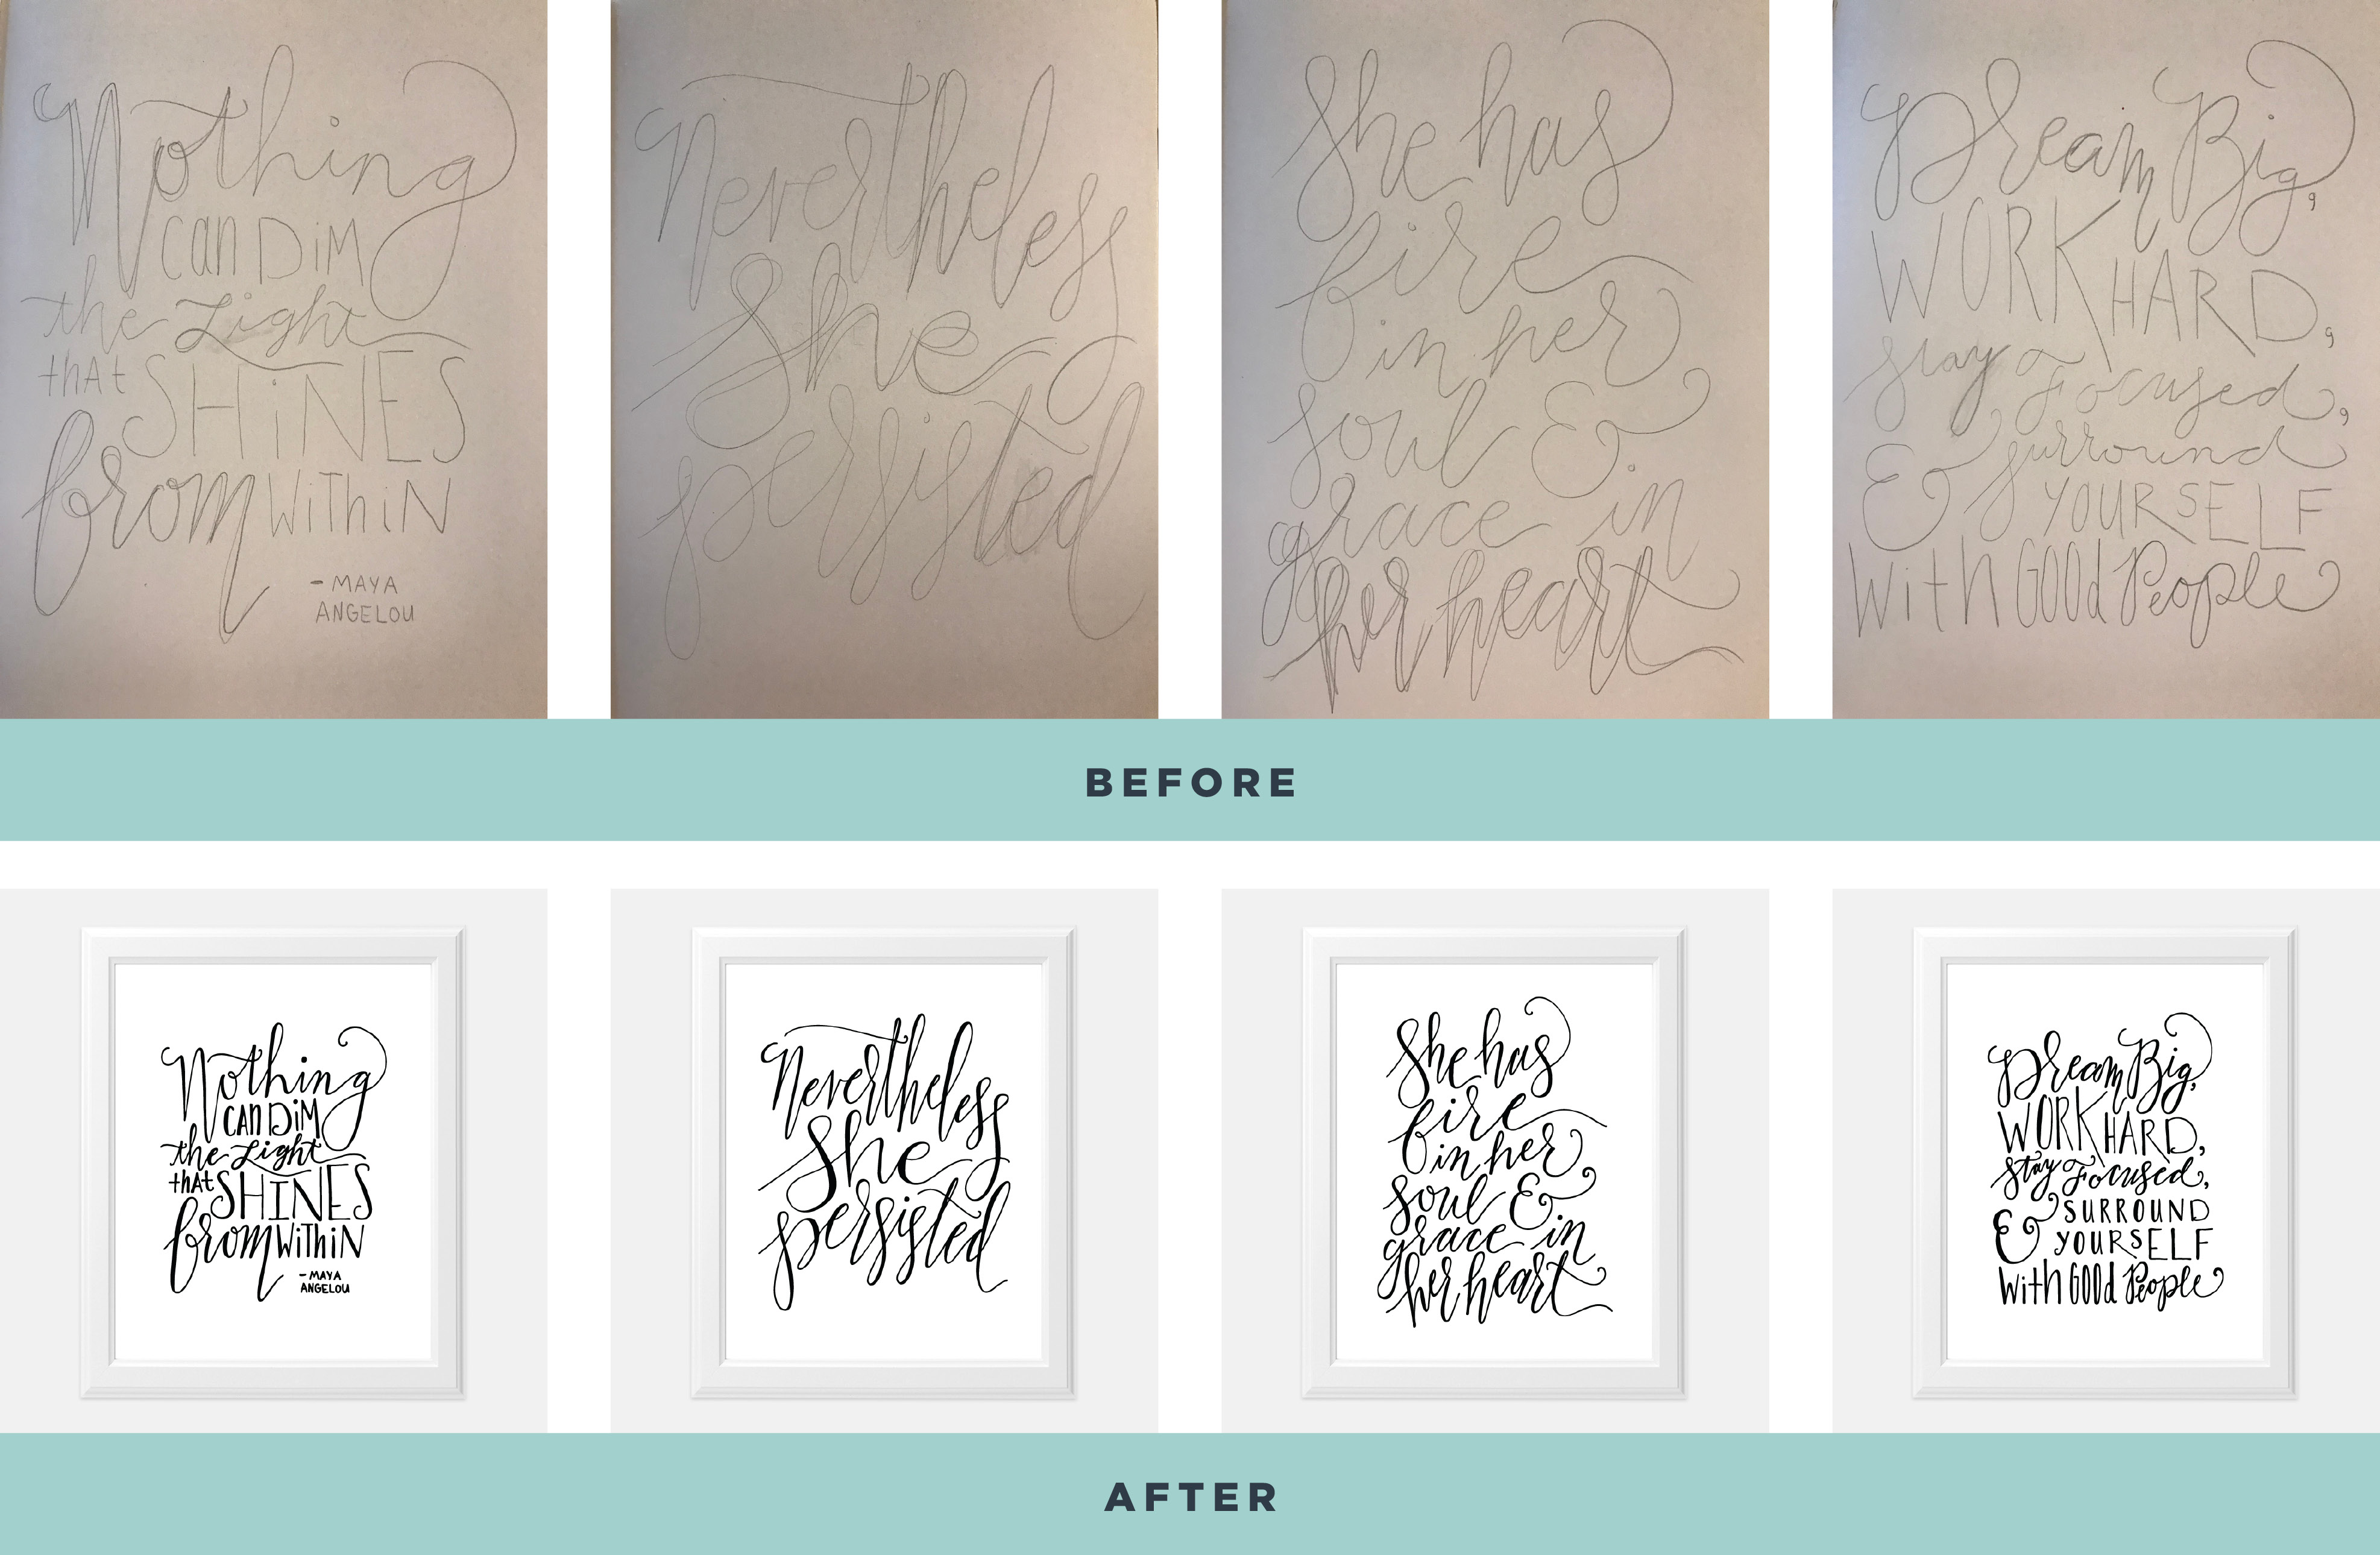 before and after shots of new quote designs from pencil sketch to digital art